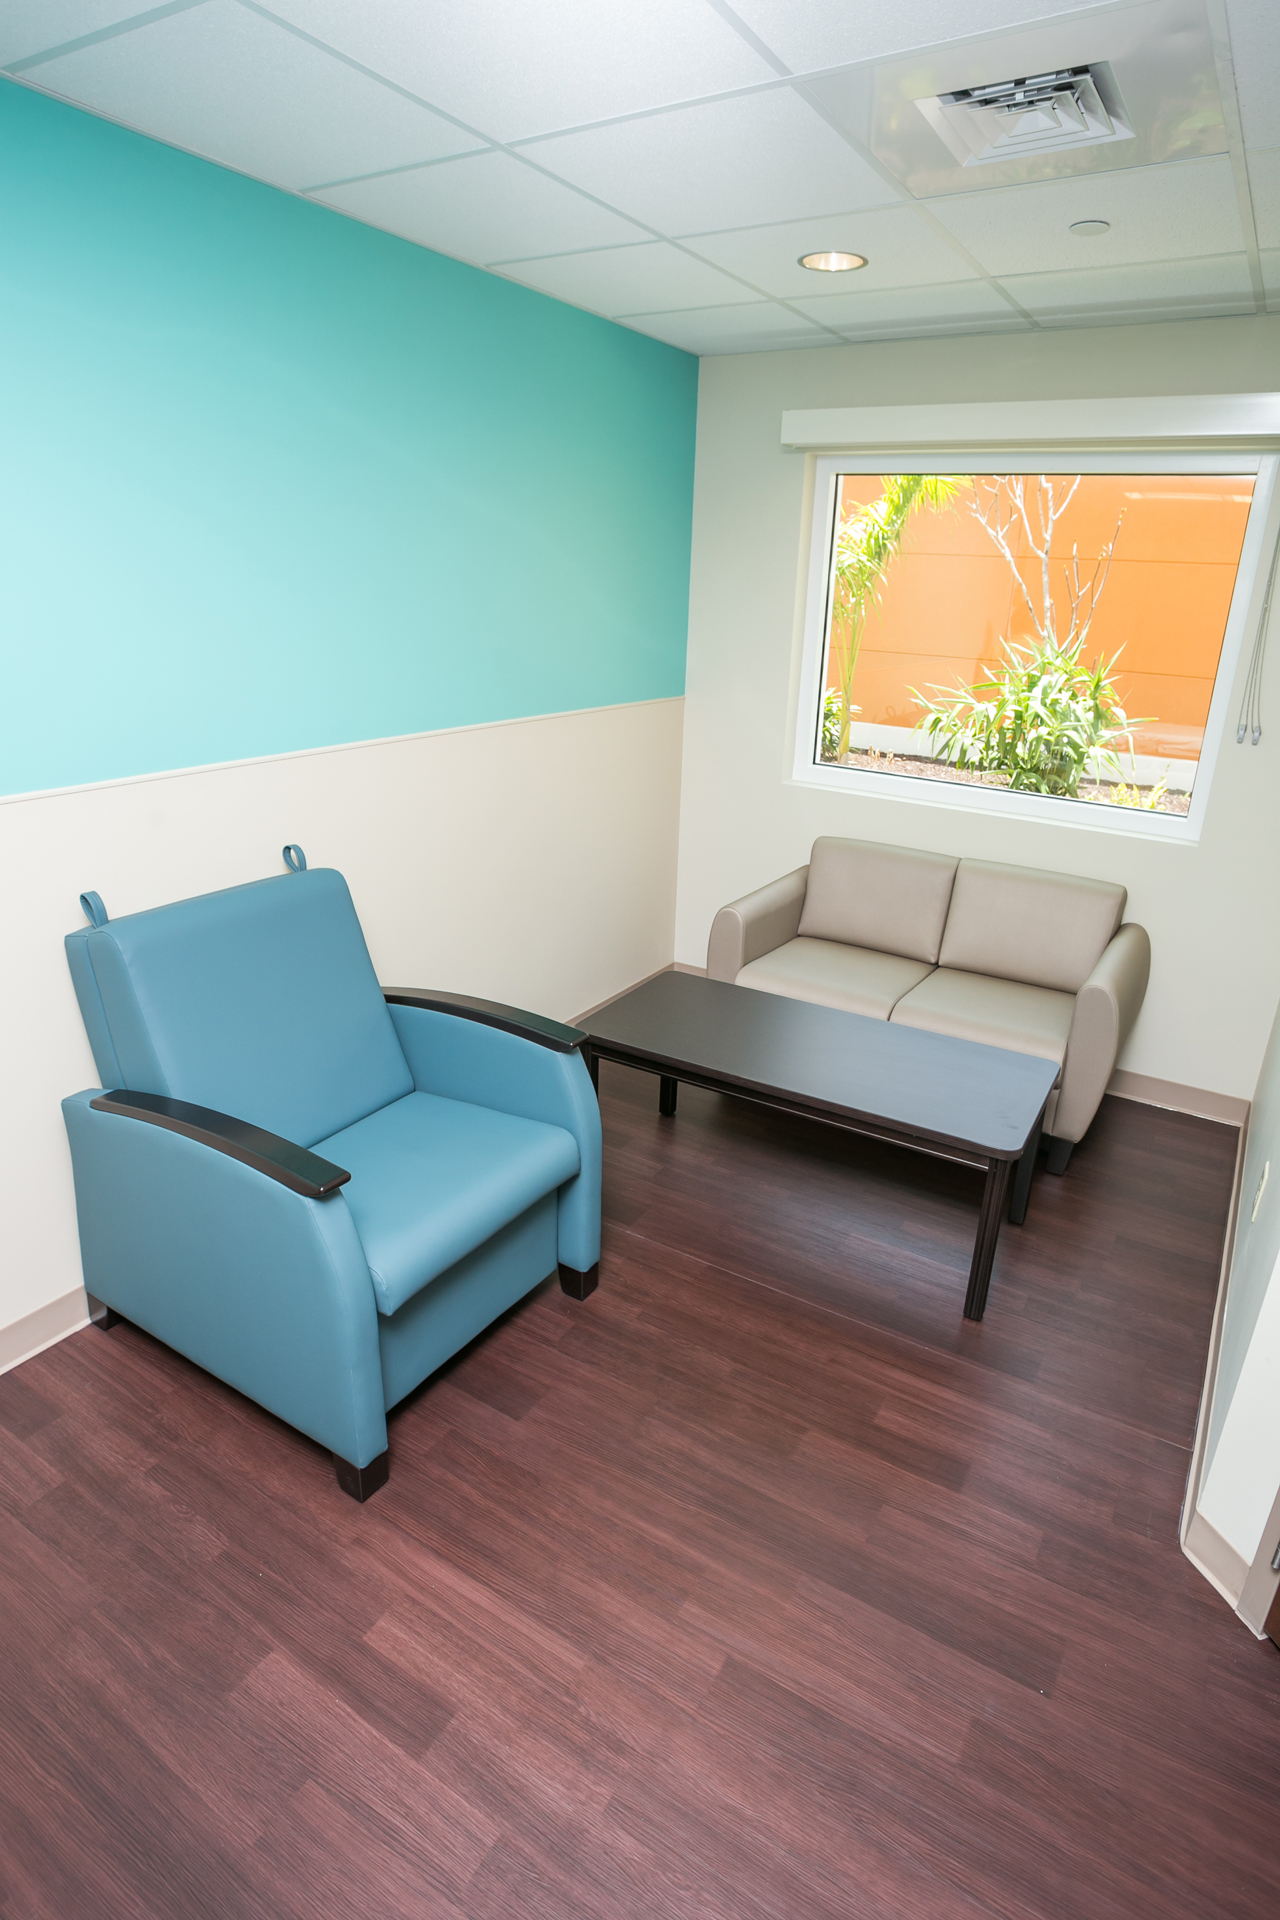 Health City sitting area in patient room